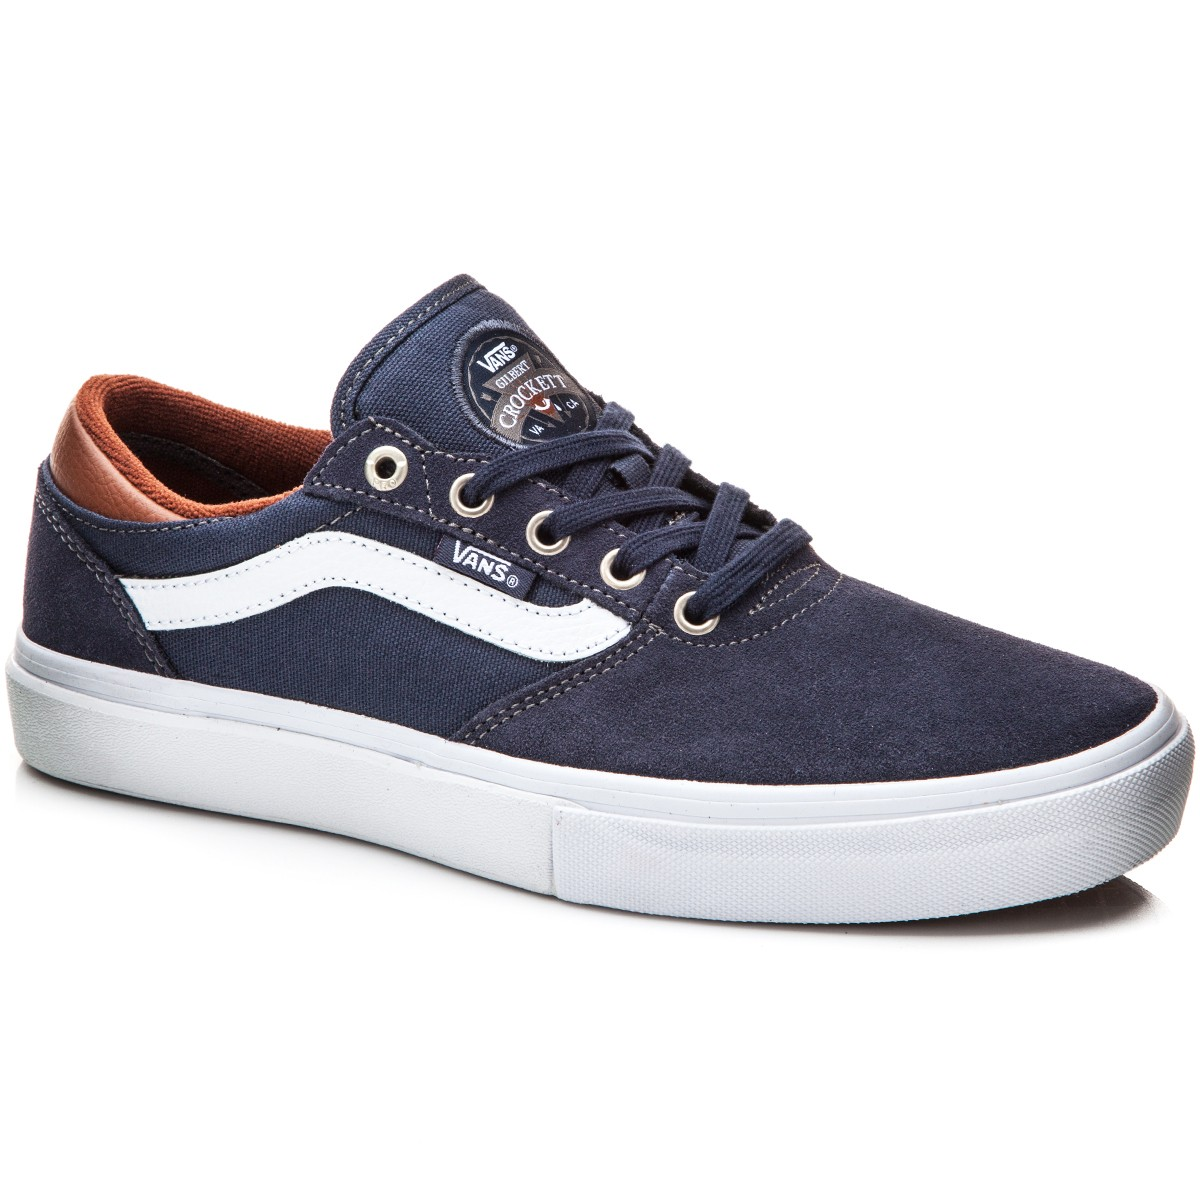 Vans Gilbert Crockett Pro Shoes - Navy/White/Leather - 10.0